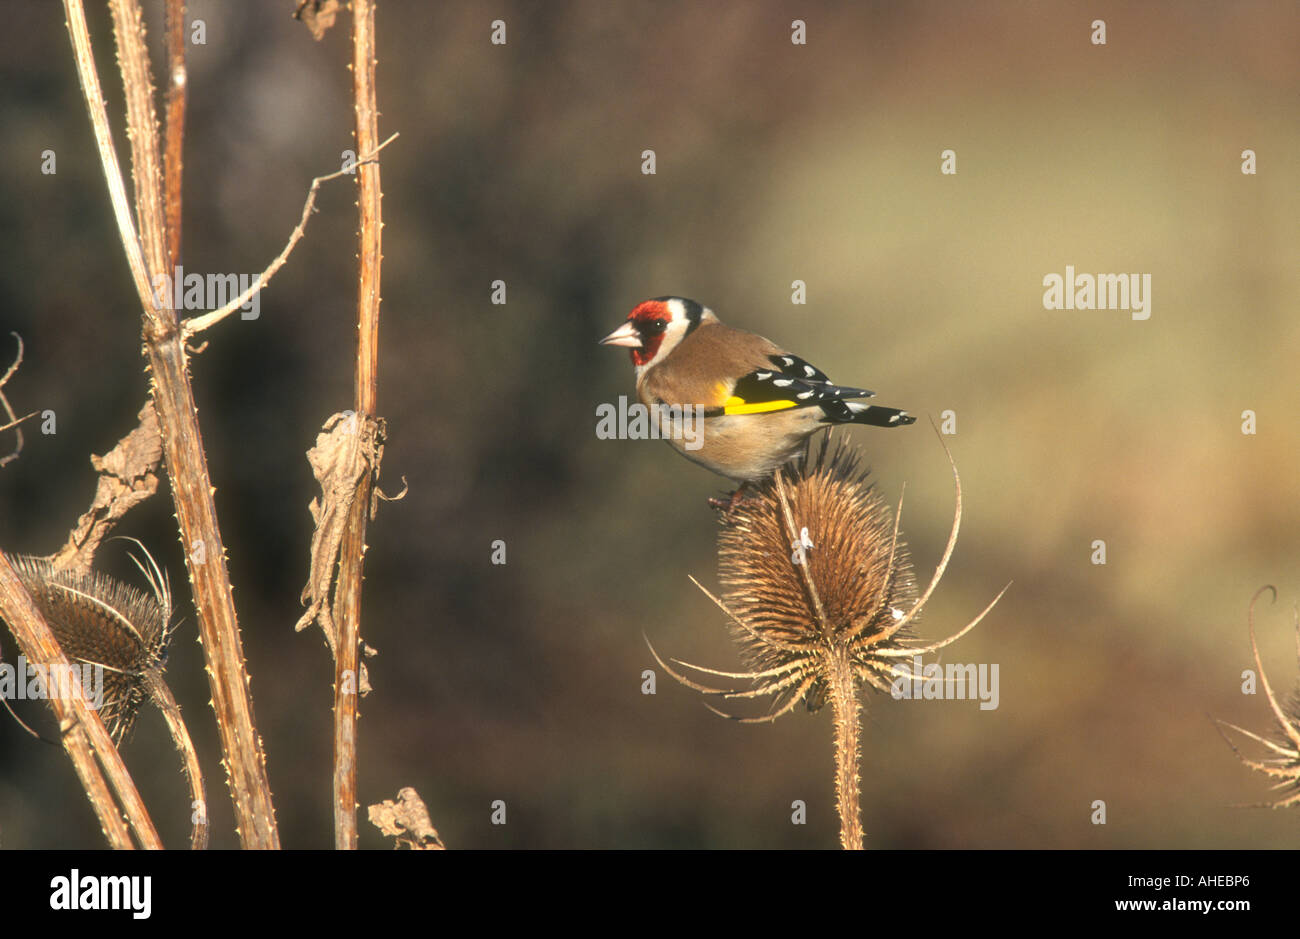 European Goldfinch Carduelis carduelis adult male perched on a Teasal seed head, Todwick, South Yorkshire, England - Stock Image